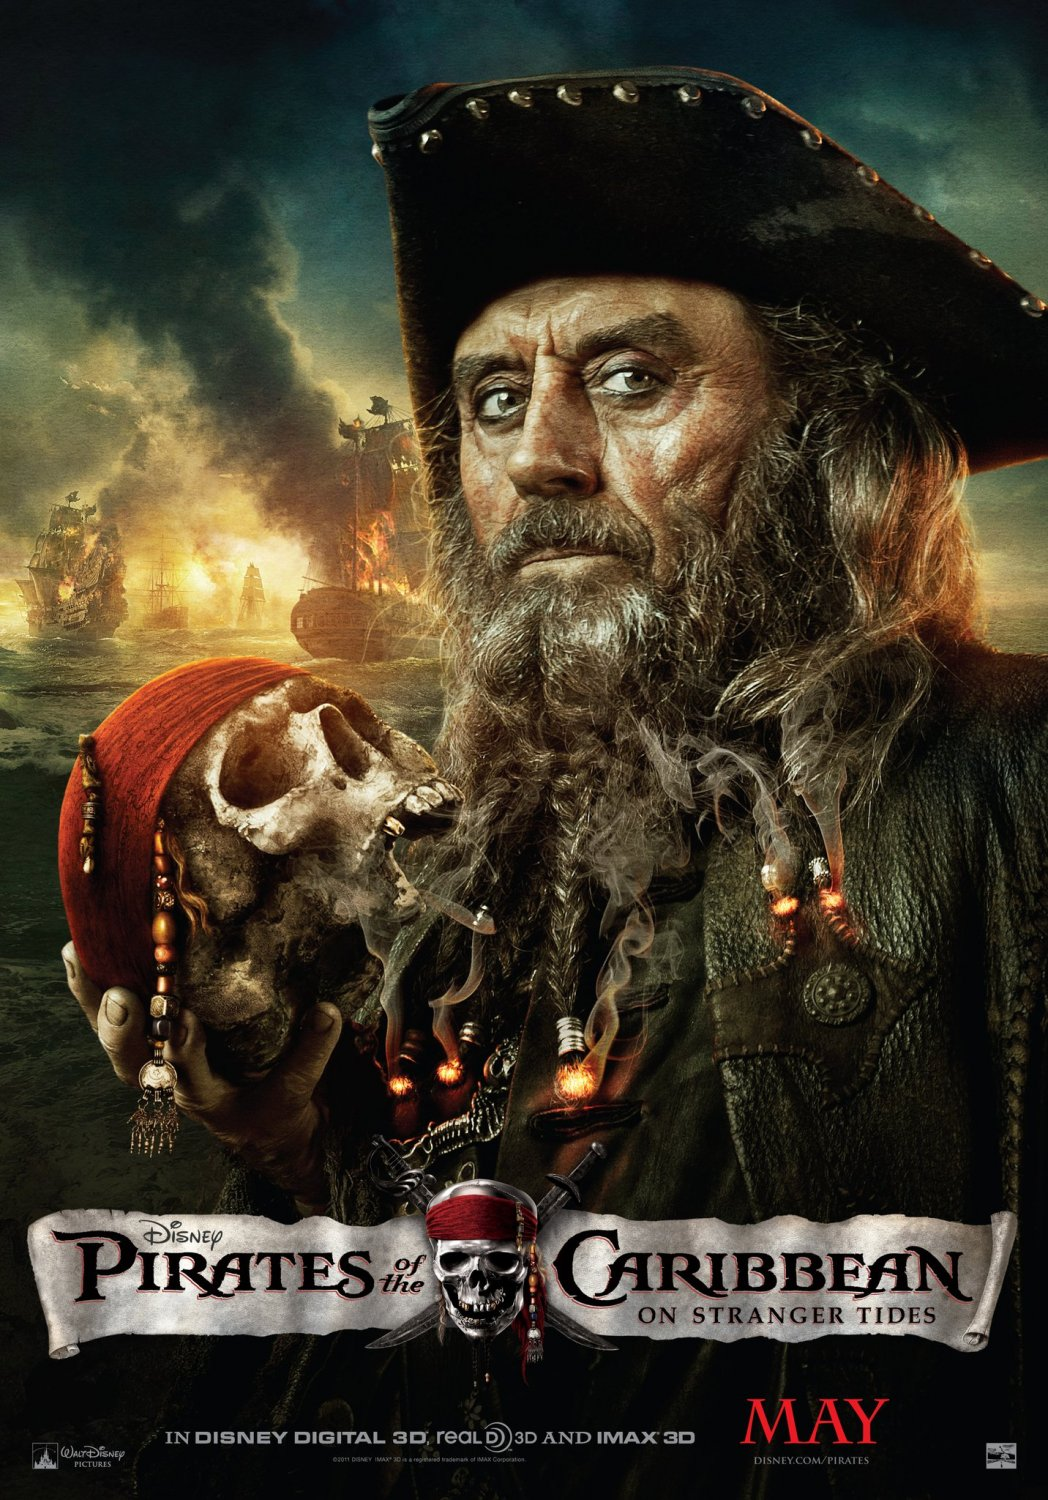 Pirates of the caribbean on stranger tides character posters